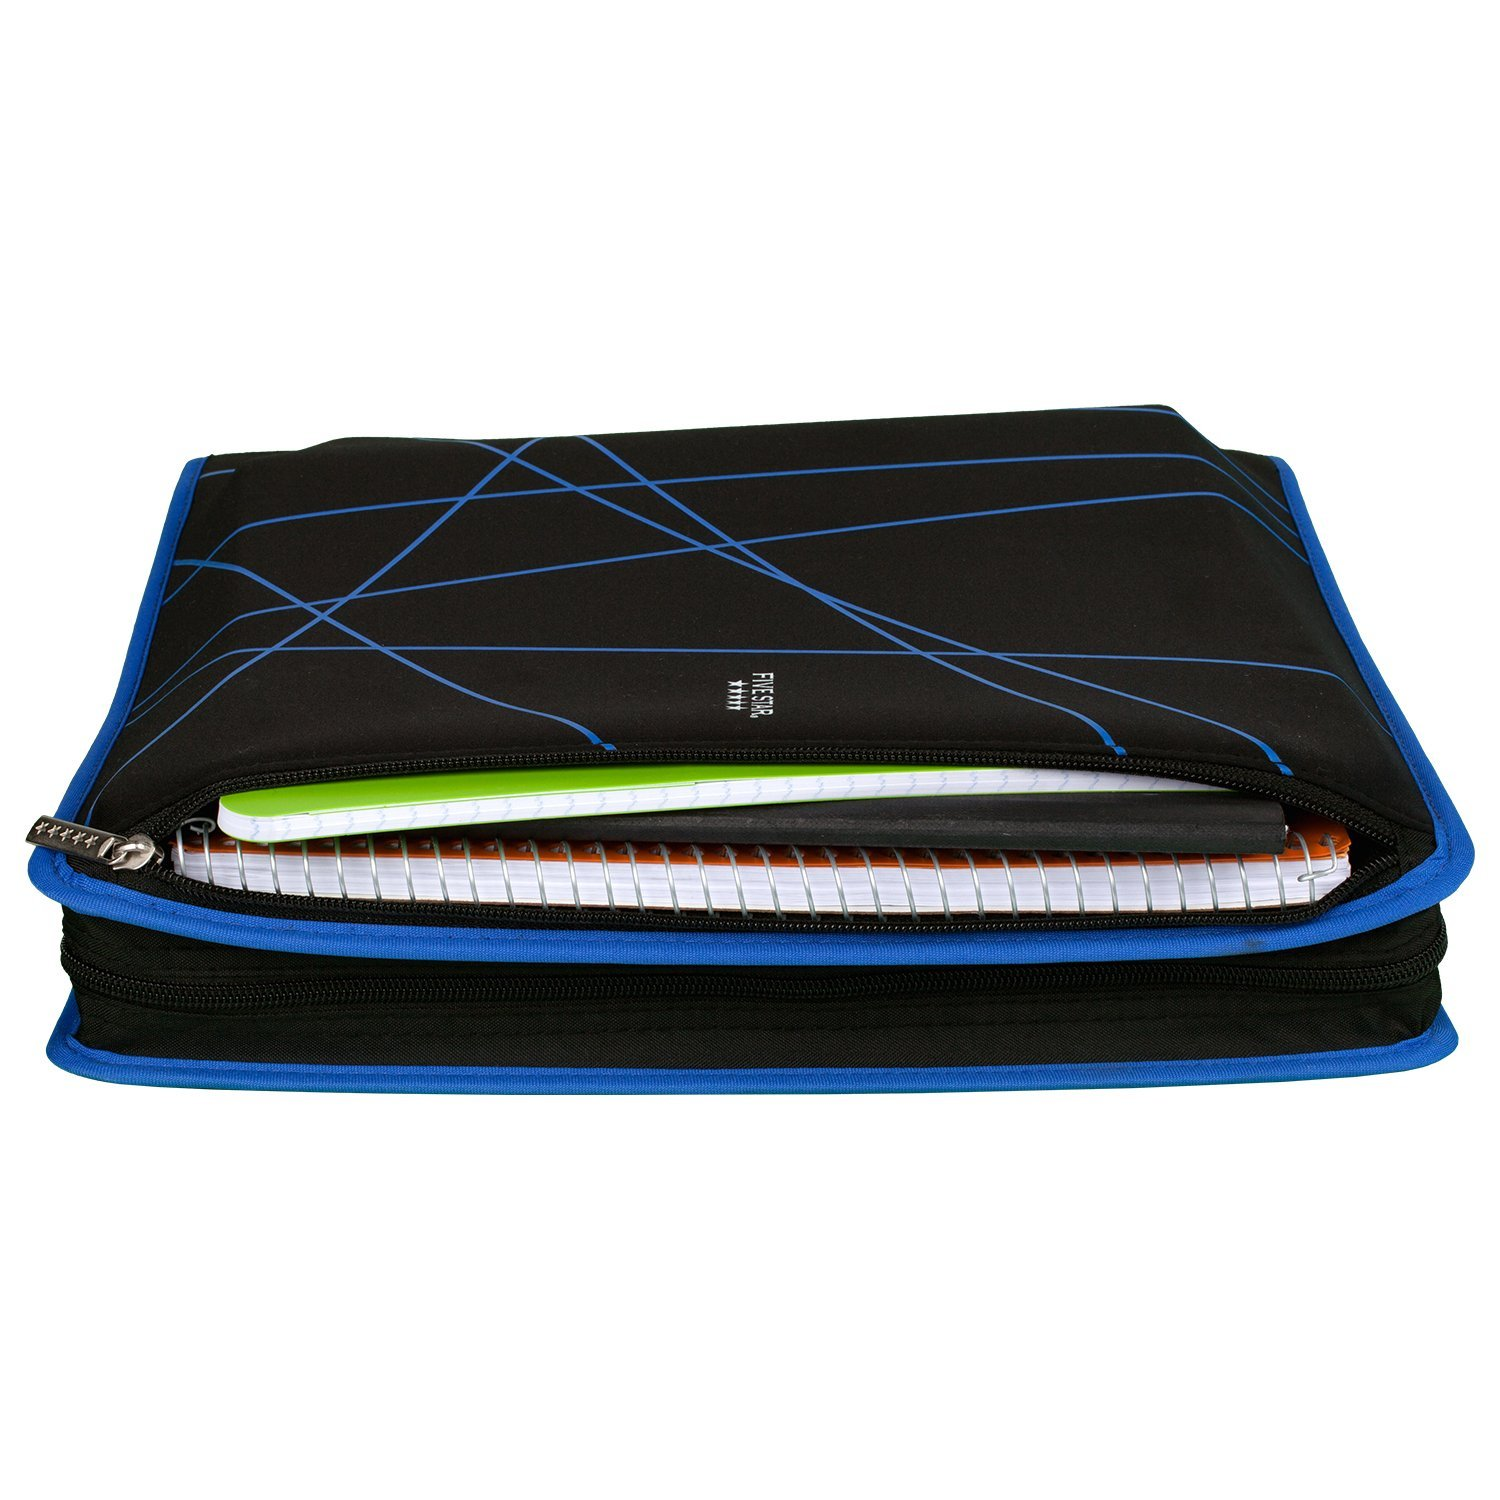 Five Star 2 Inch Zipper Binder, Ring Binder, Xpanz, Assorted Colors (29040) by Five Star (Image #13)